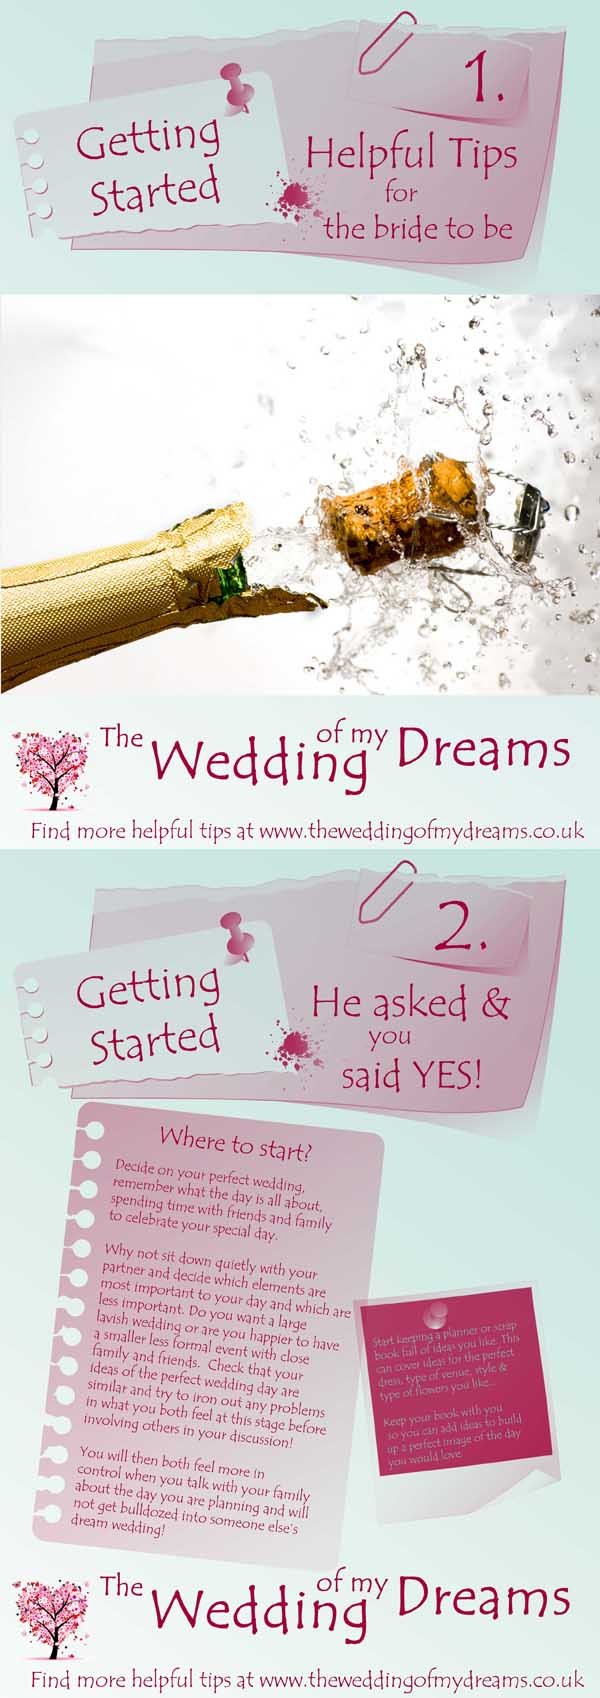 Wedding Planning Check list - Getting Started